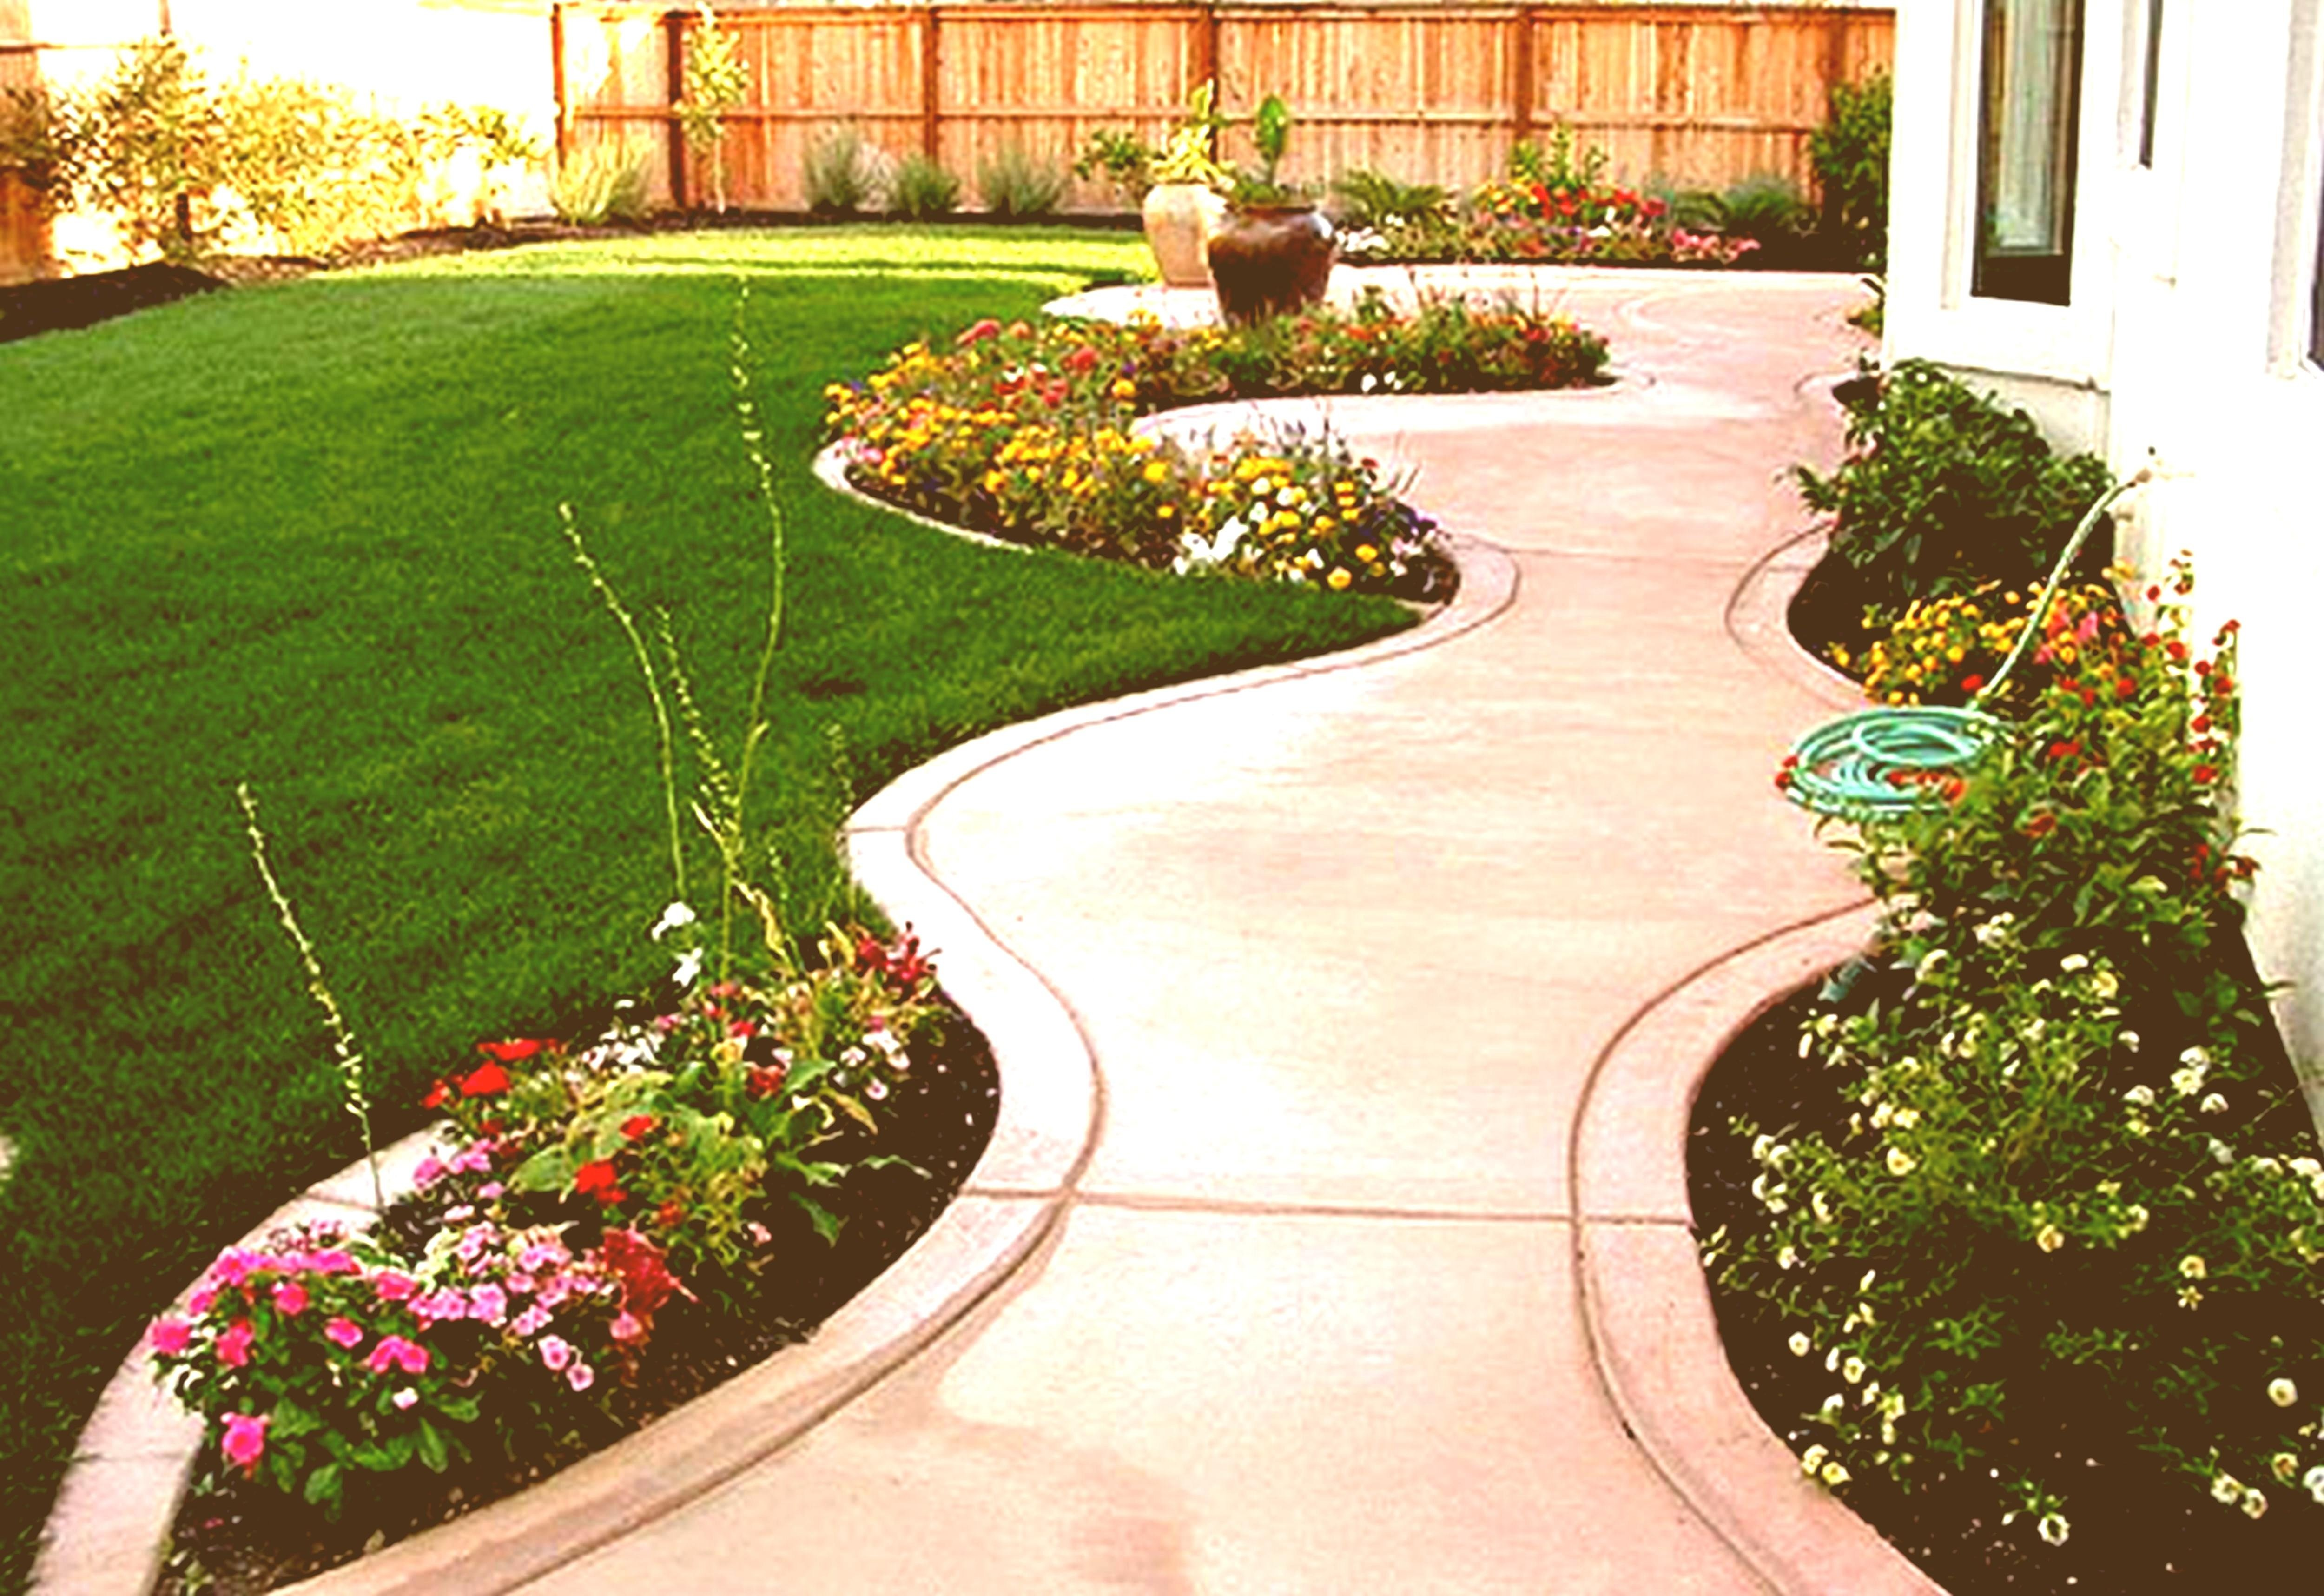 10 Awesome Backyard Landscape Ideas On A Budget 2020 on Inexpensive Backyard Landscaping id=39912